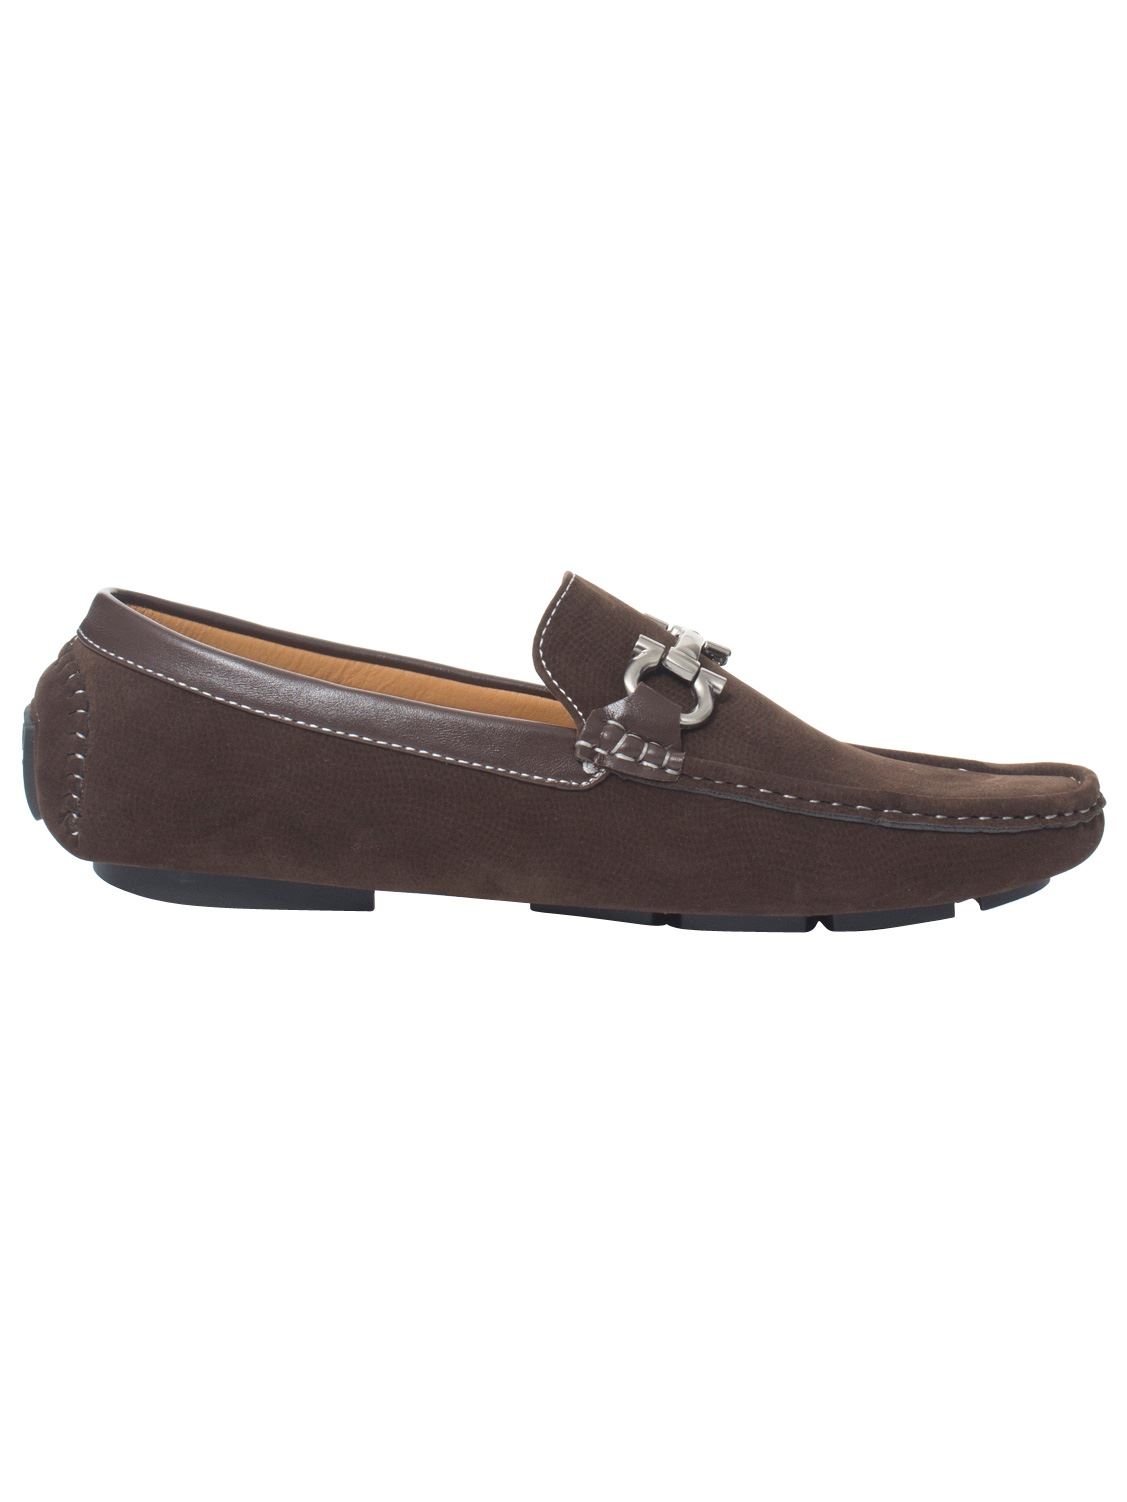 Mens-Slip-Ons-Shoes-Boat-Deck-Driving-Smart-Buckle-Moccasins-Suede-Look-Loafers thumbnail 78